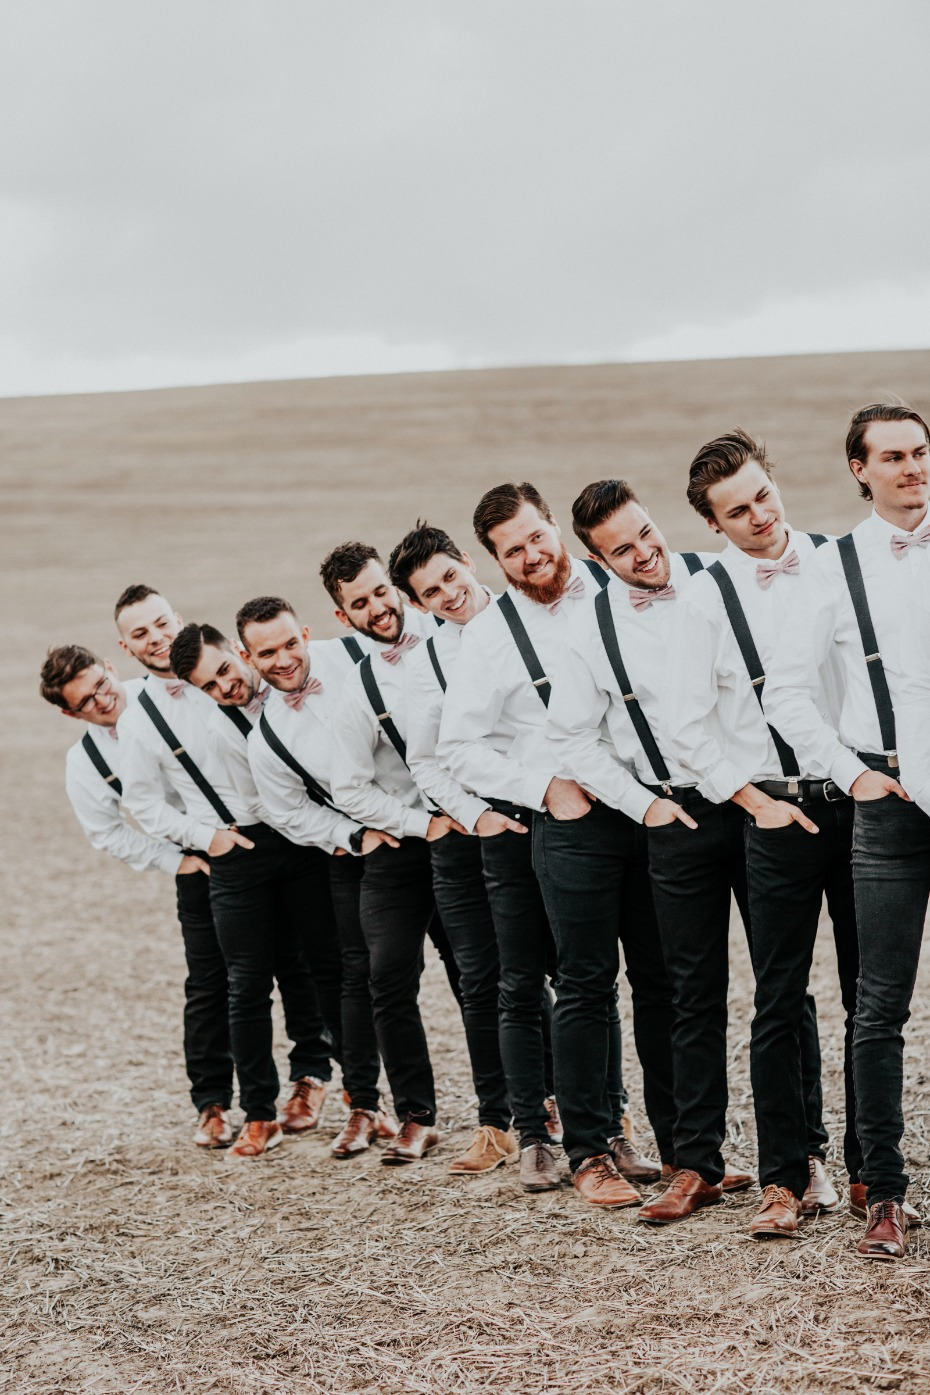 grooms men trying to get a good look